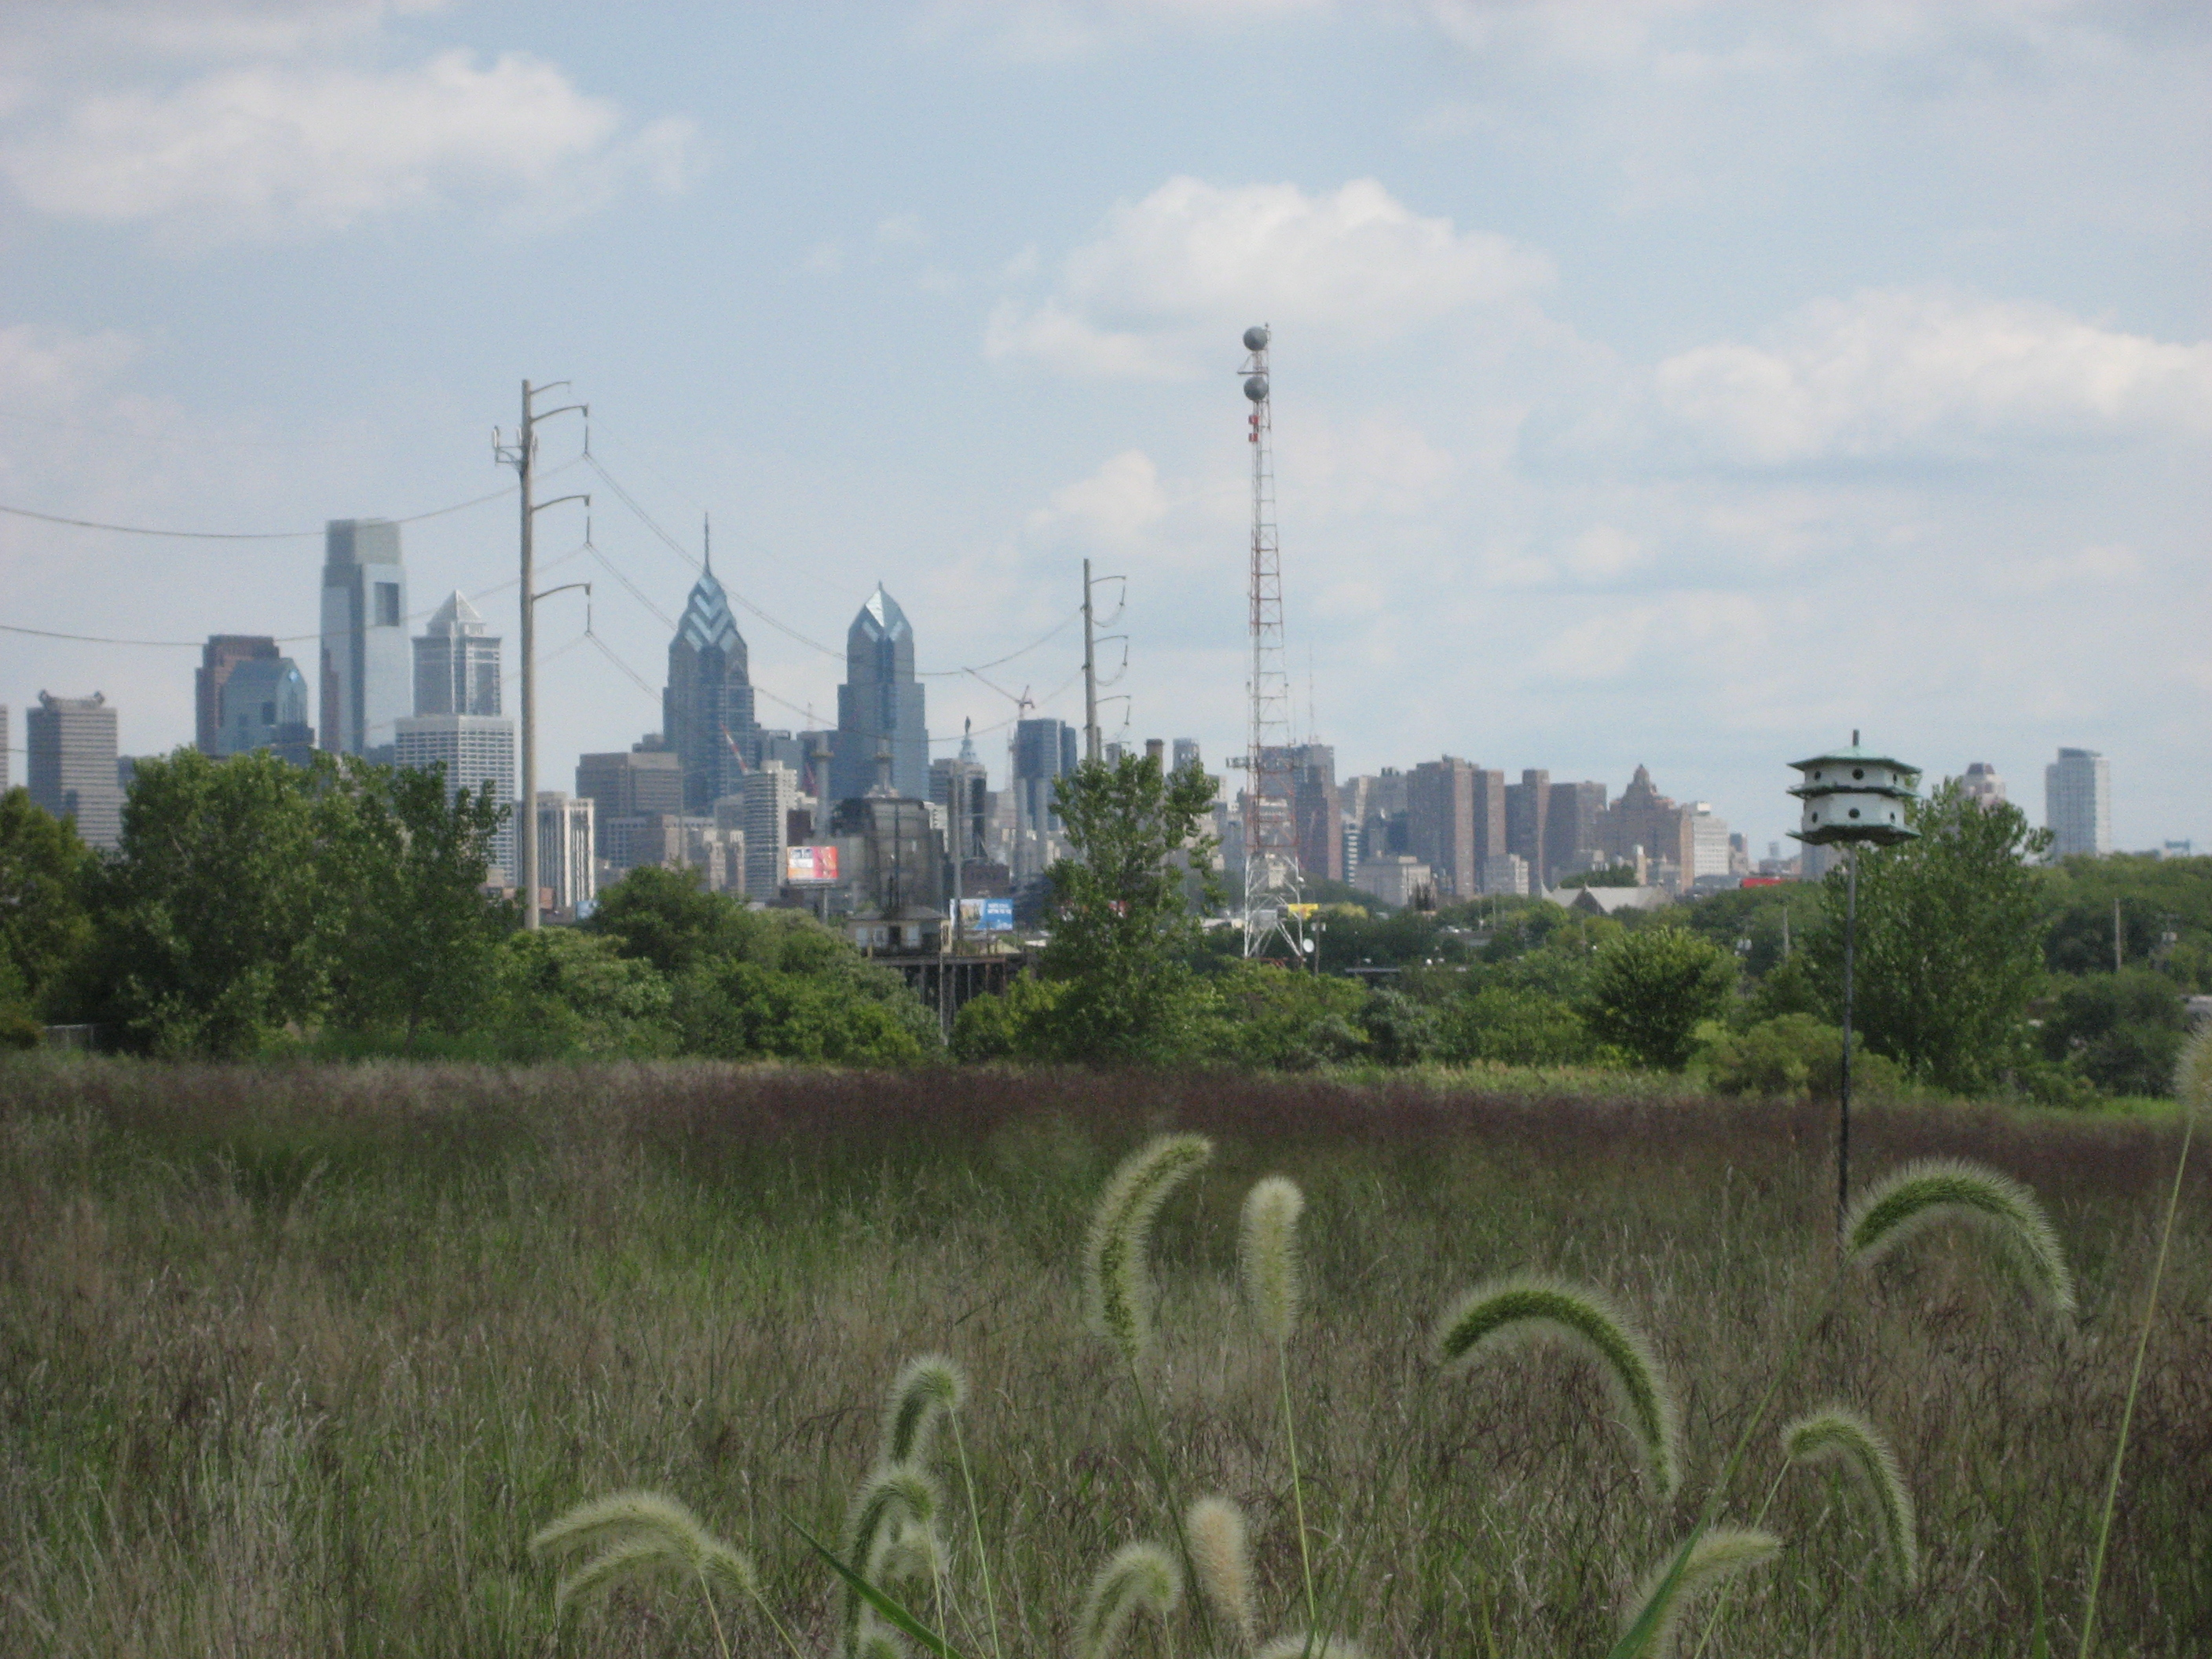 Cityscape from Bartram's Garden